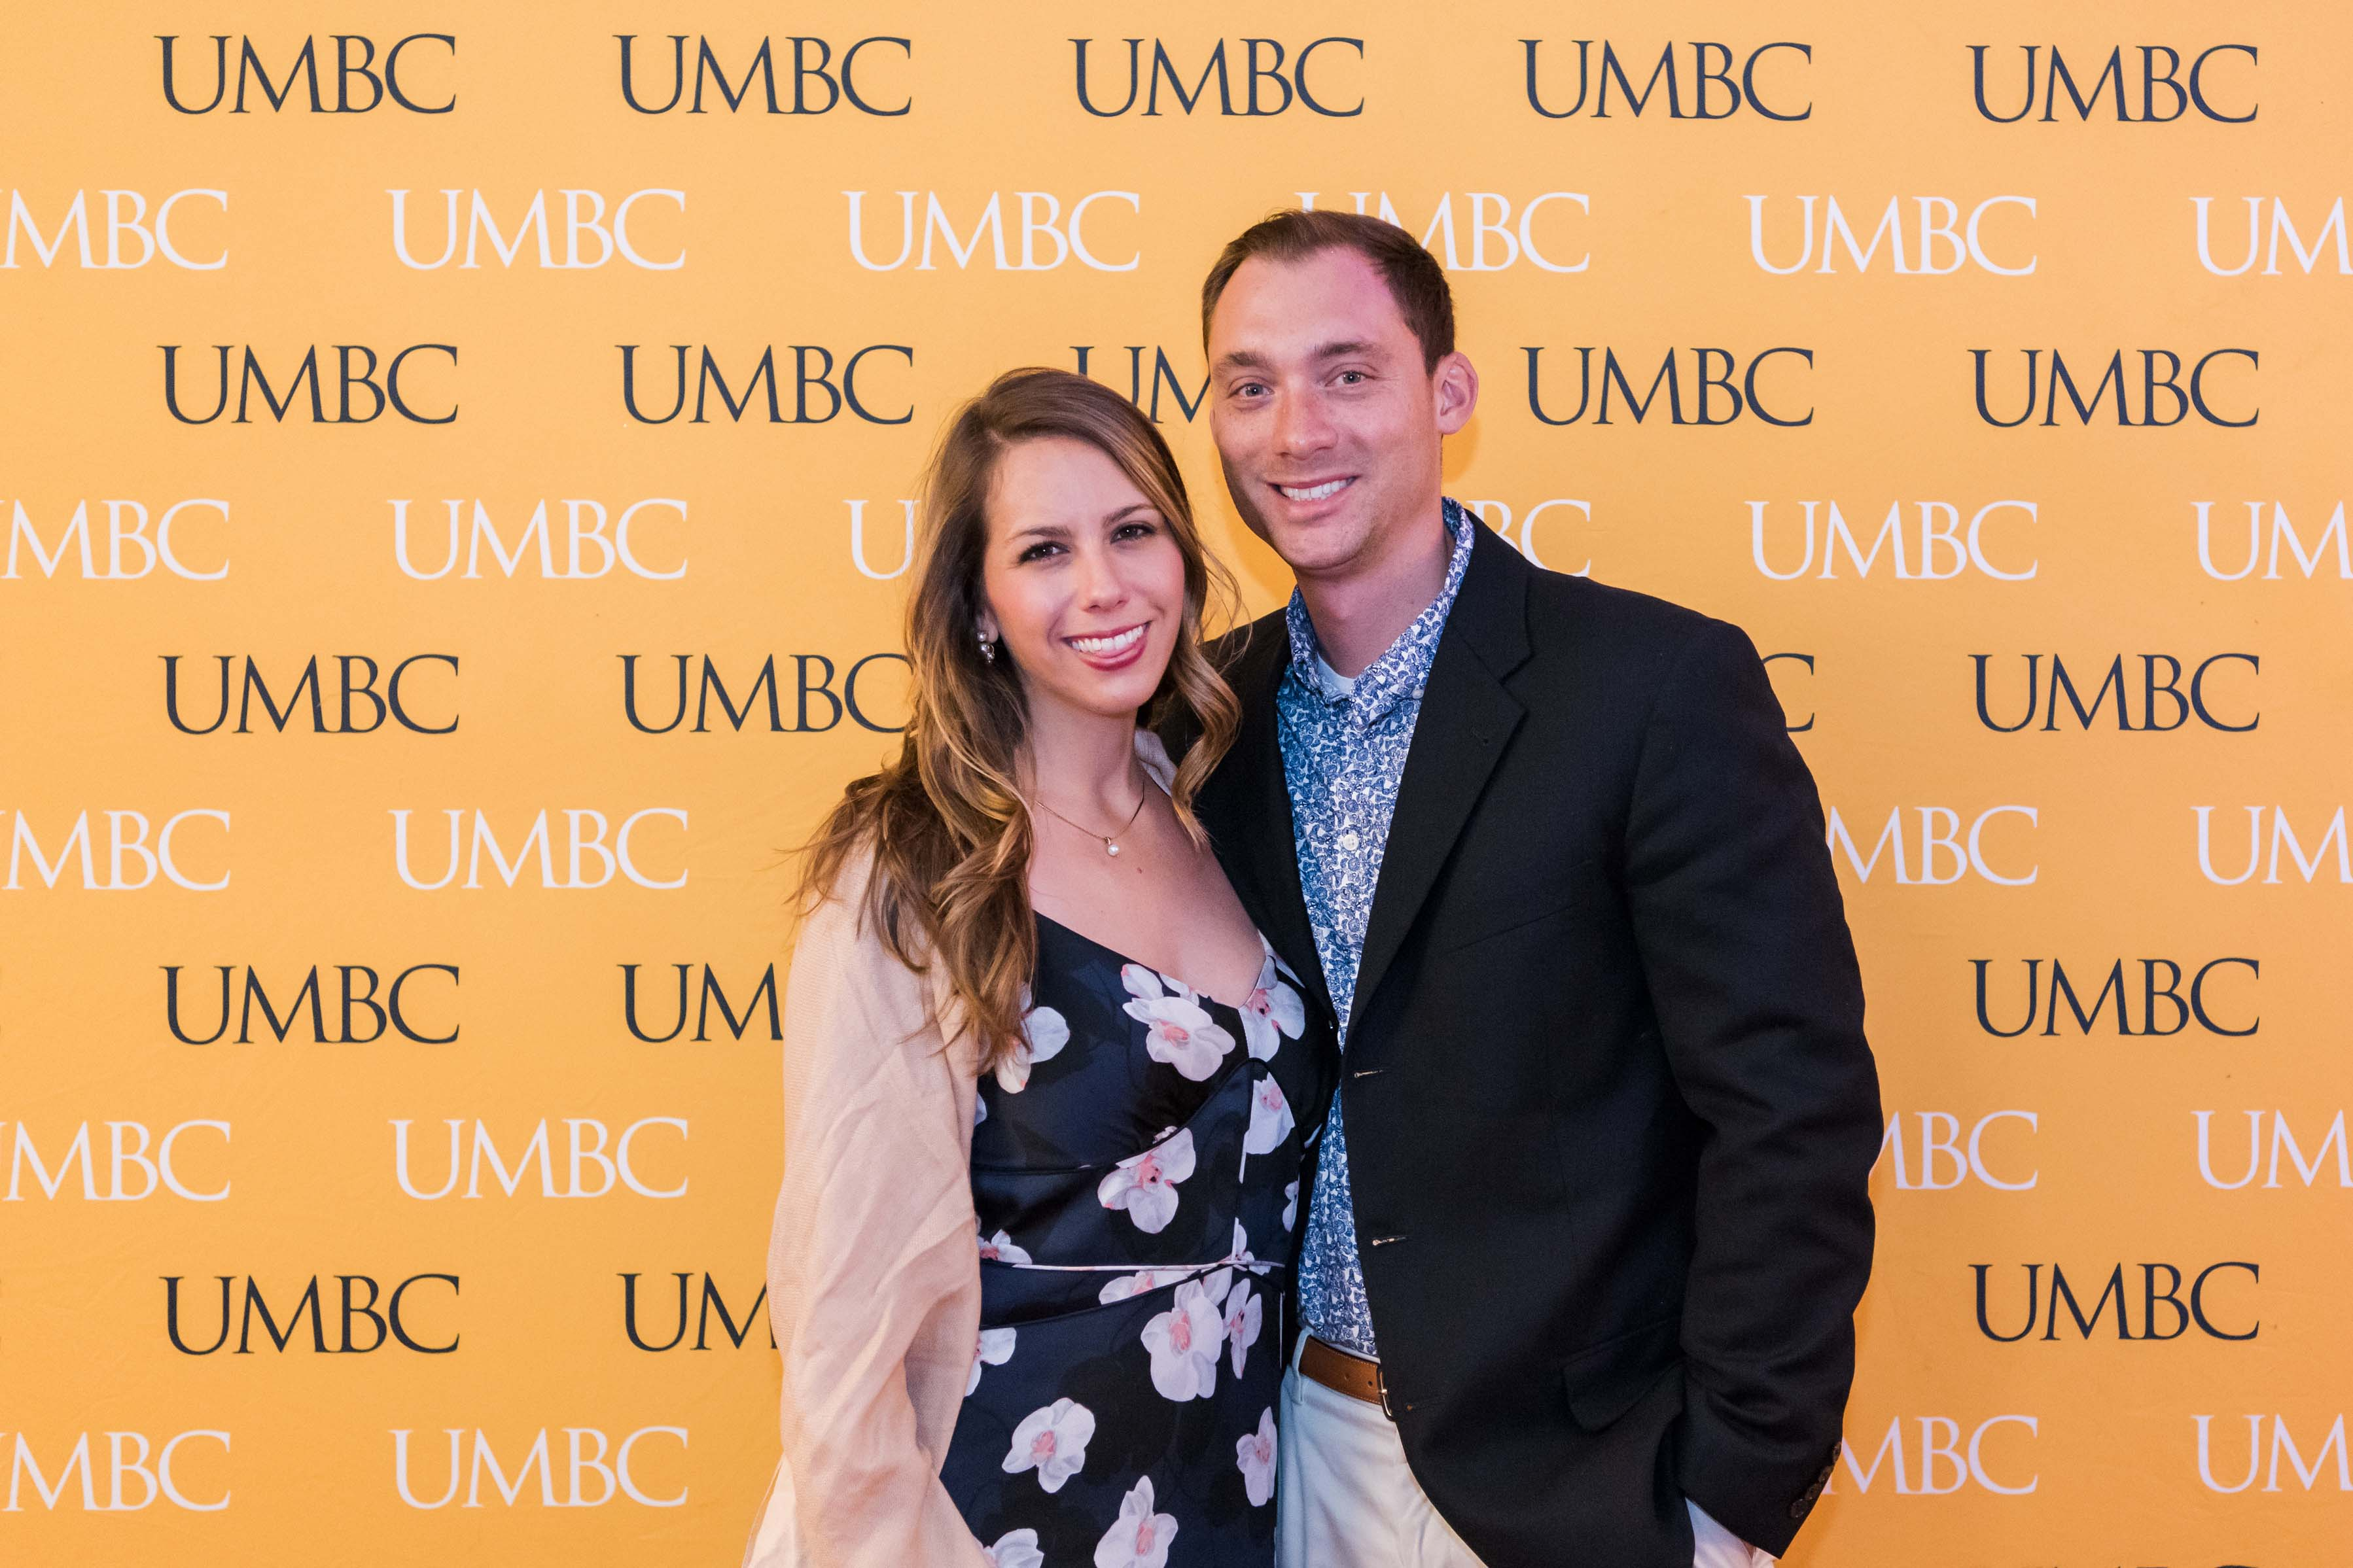 Couple pose together at wine tasting with UMBC wall